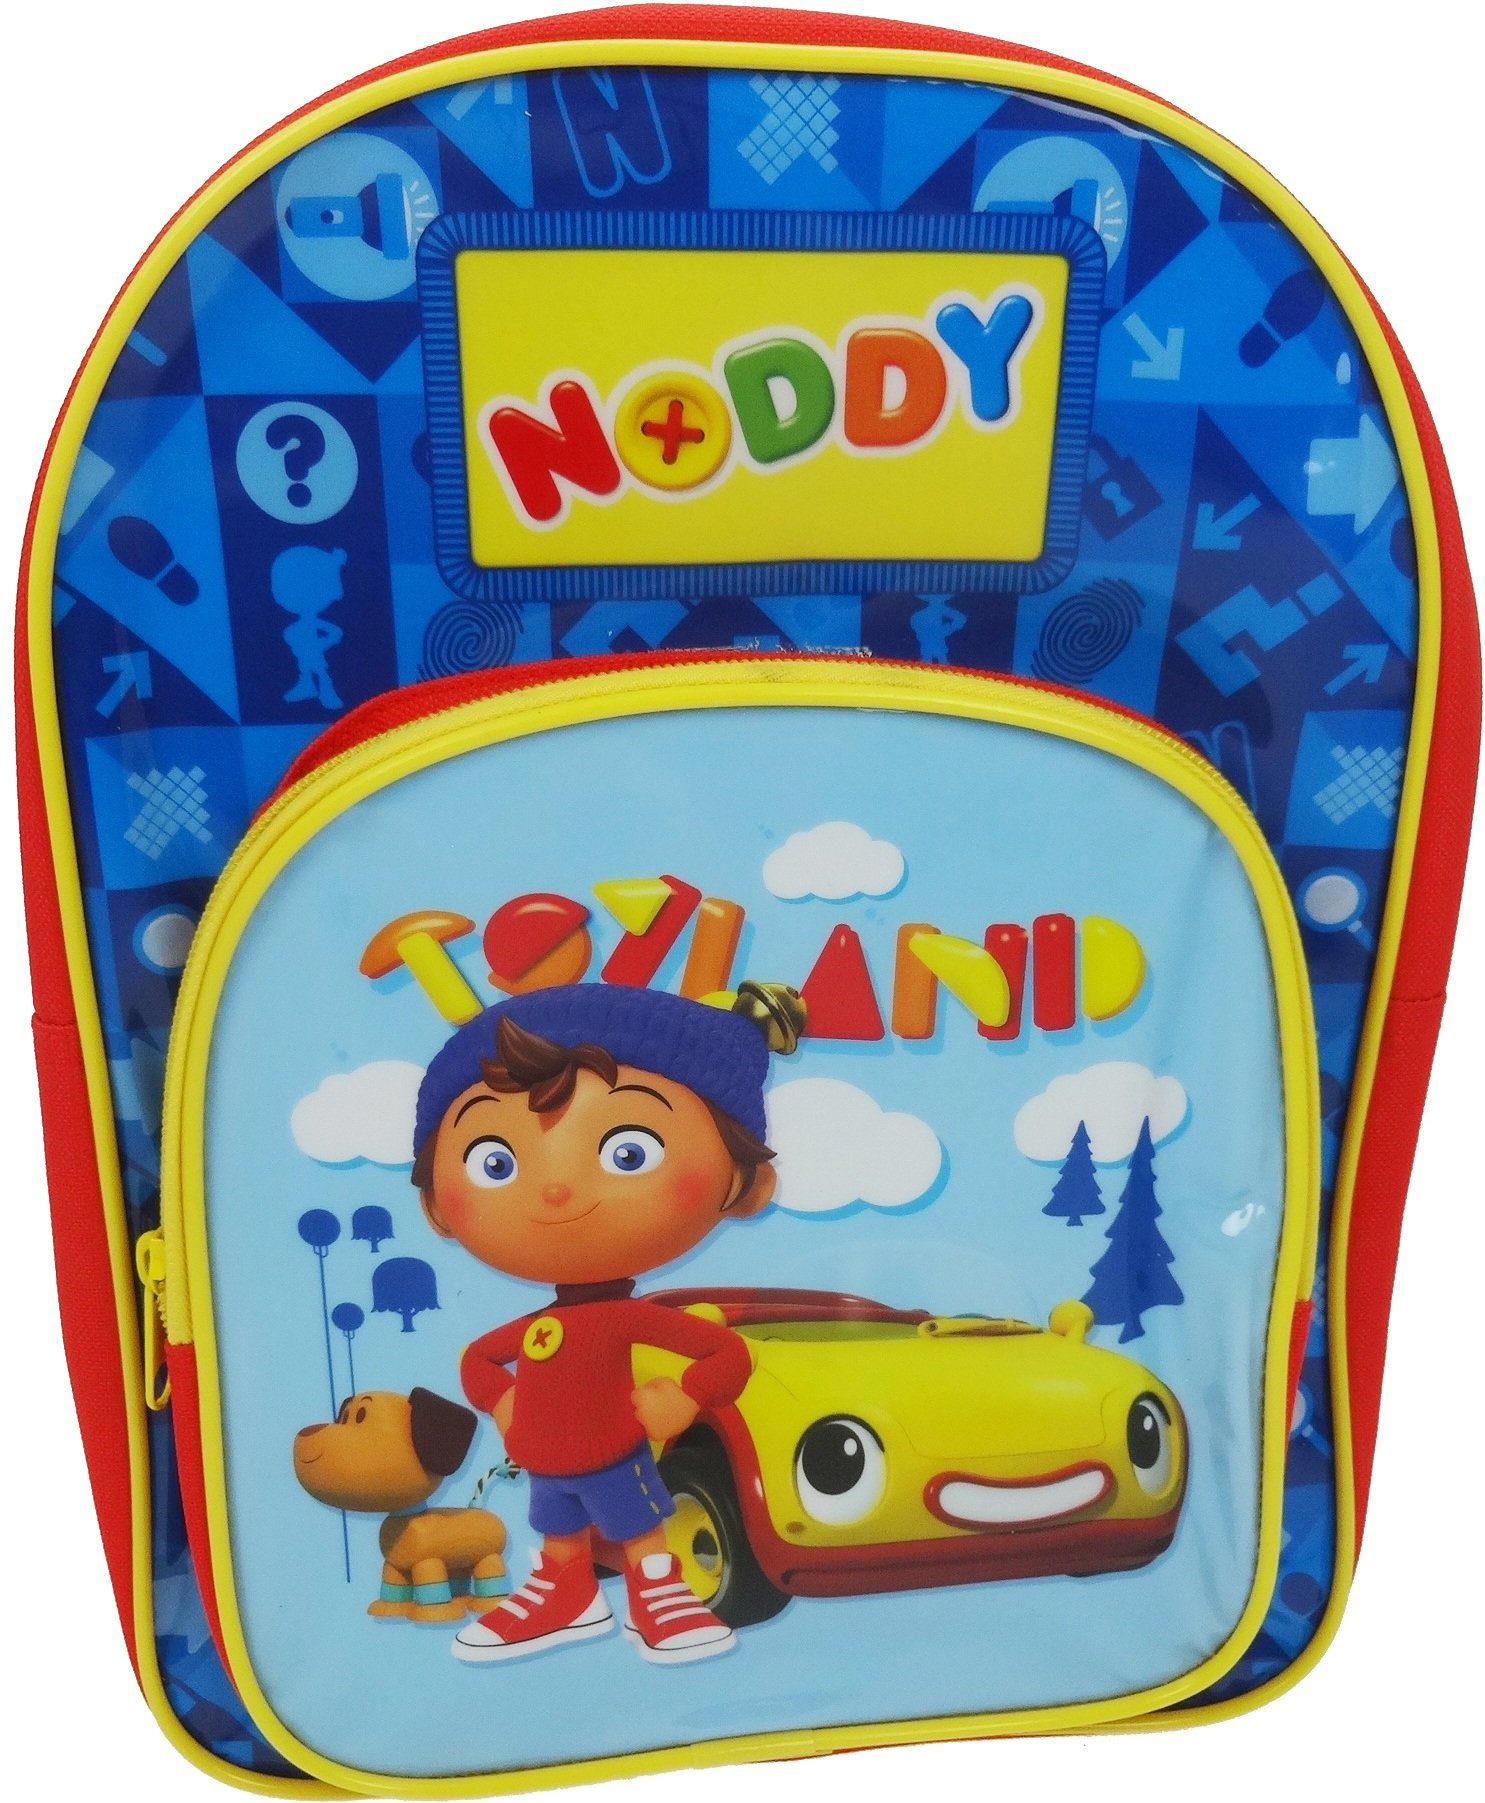 Noddy Children's Backpack, 32 cm, 9 Liters, Multicolor NODD001021